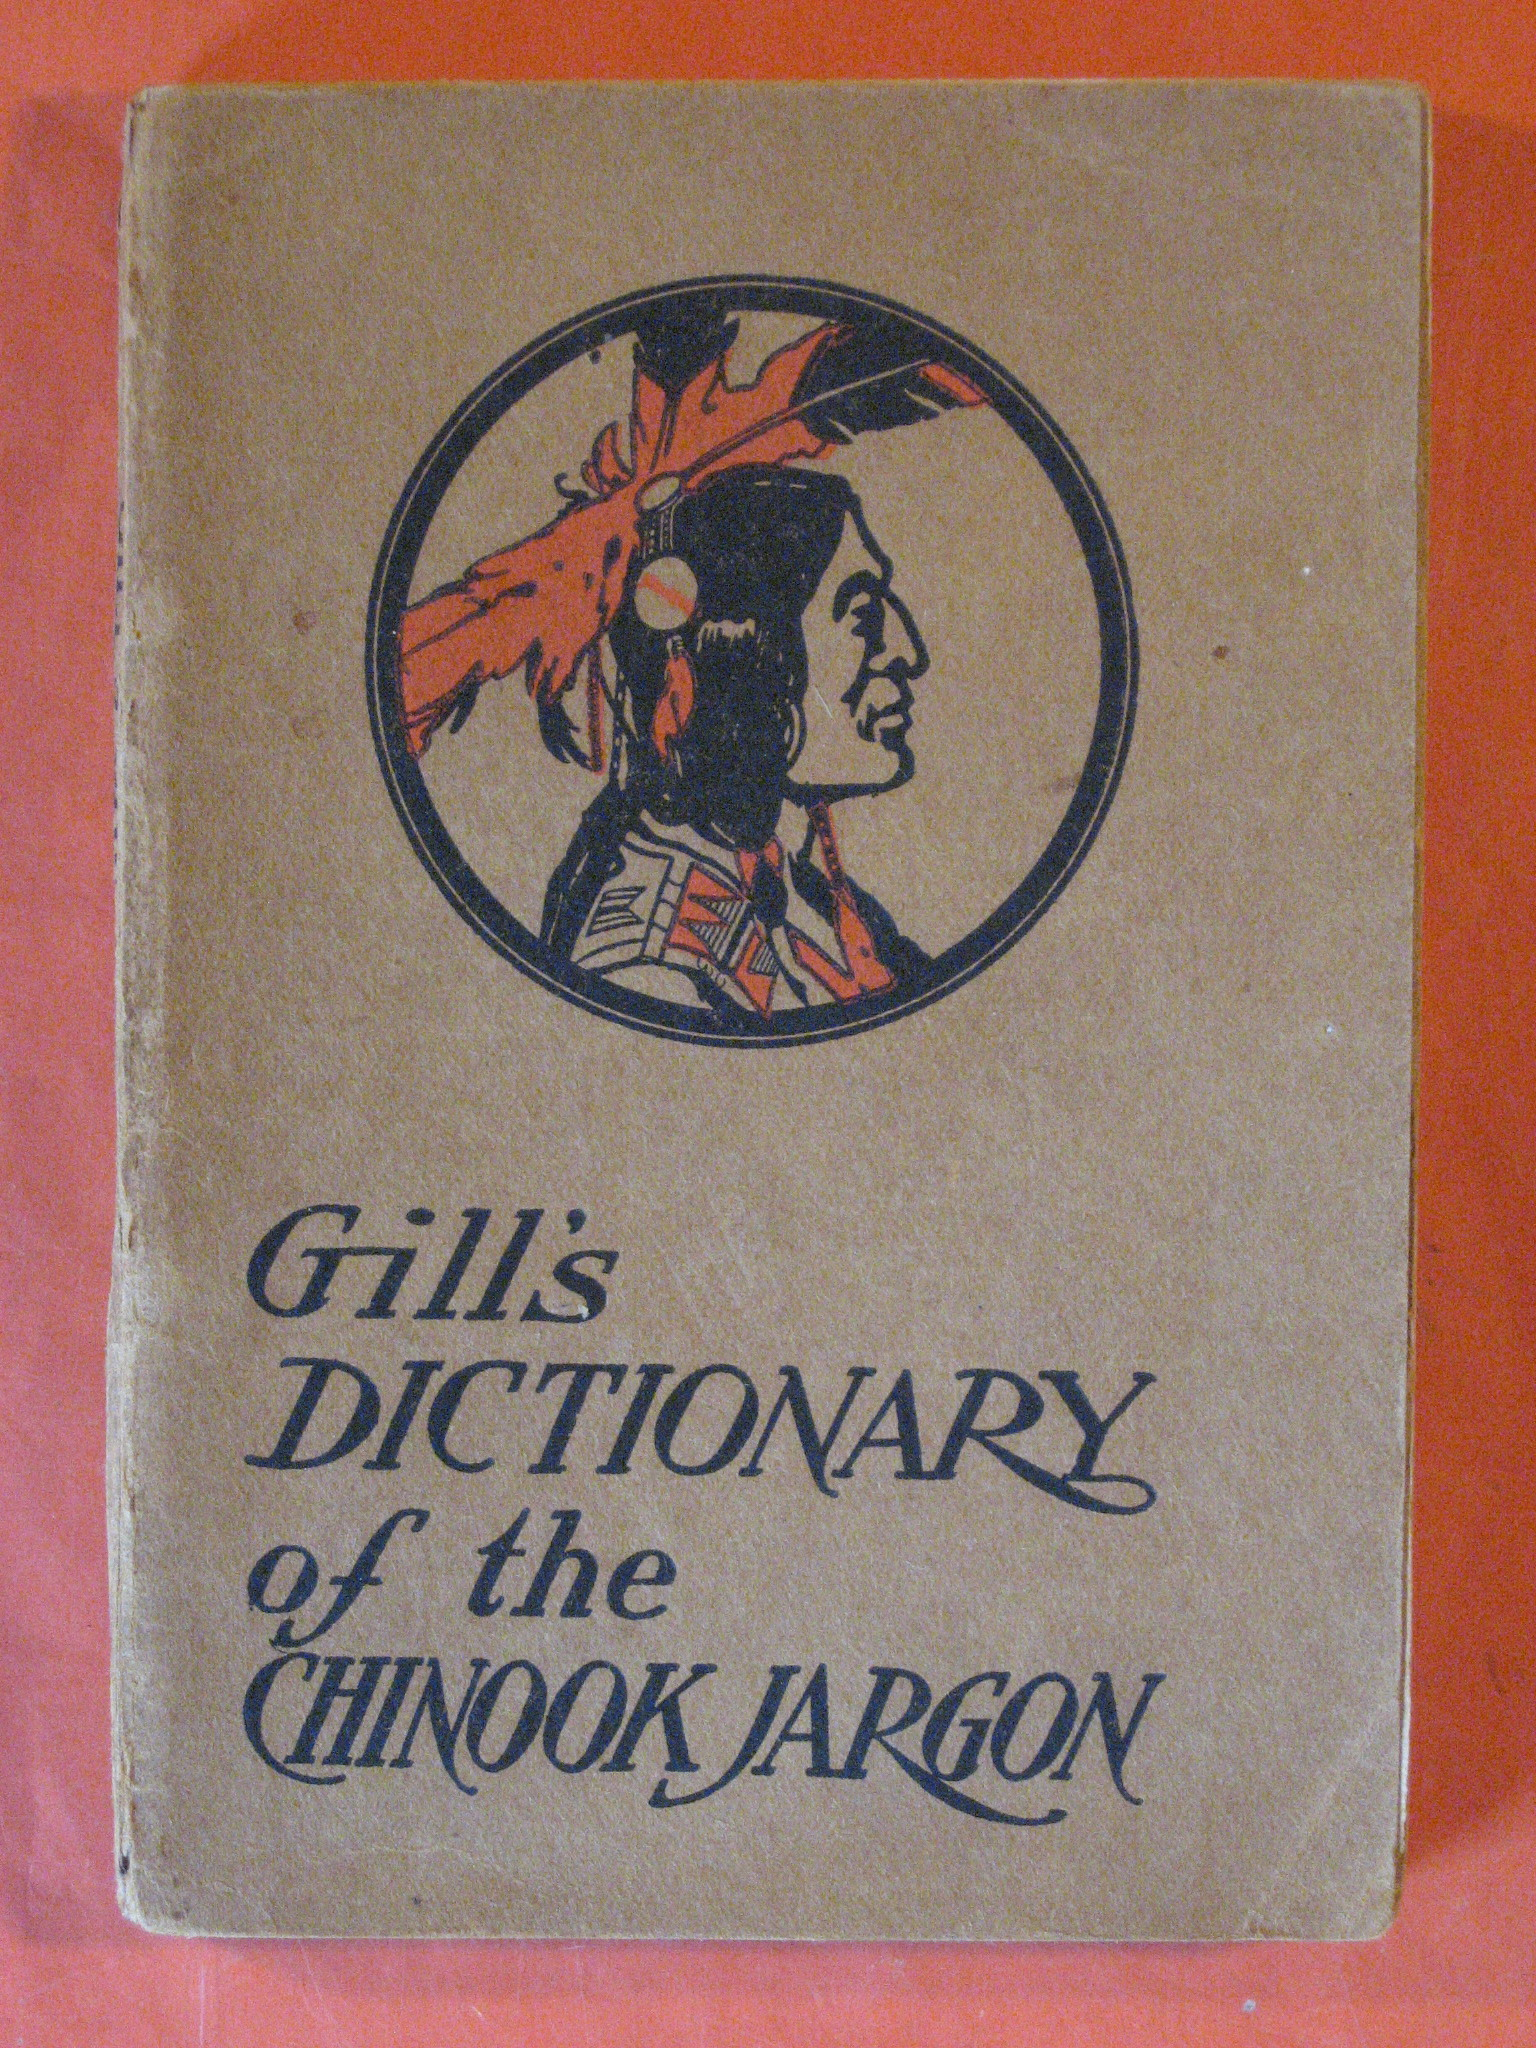 Gill's Dictionary of the Chinook Jargon, Gill, John